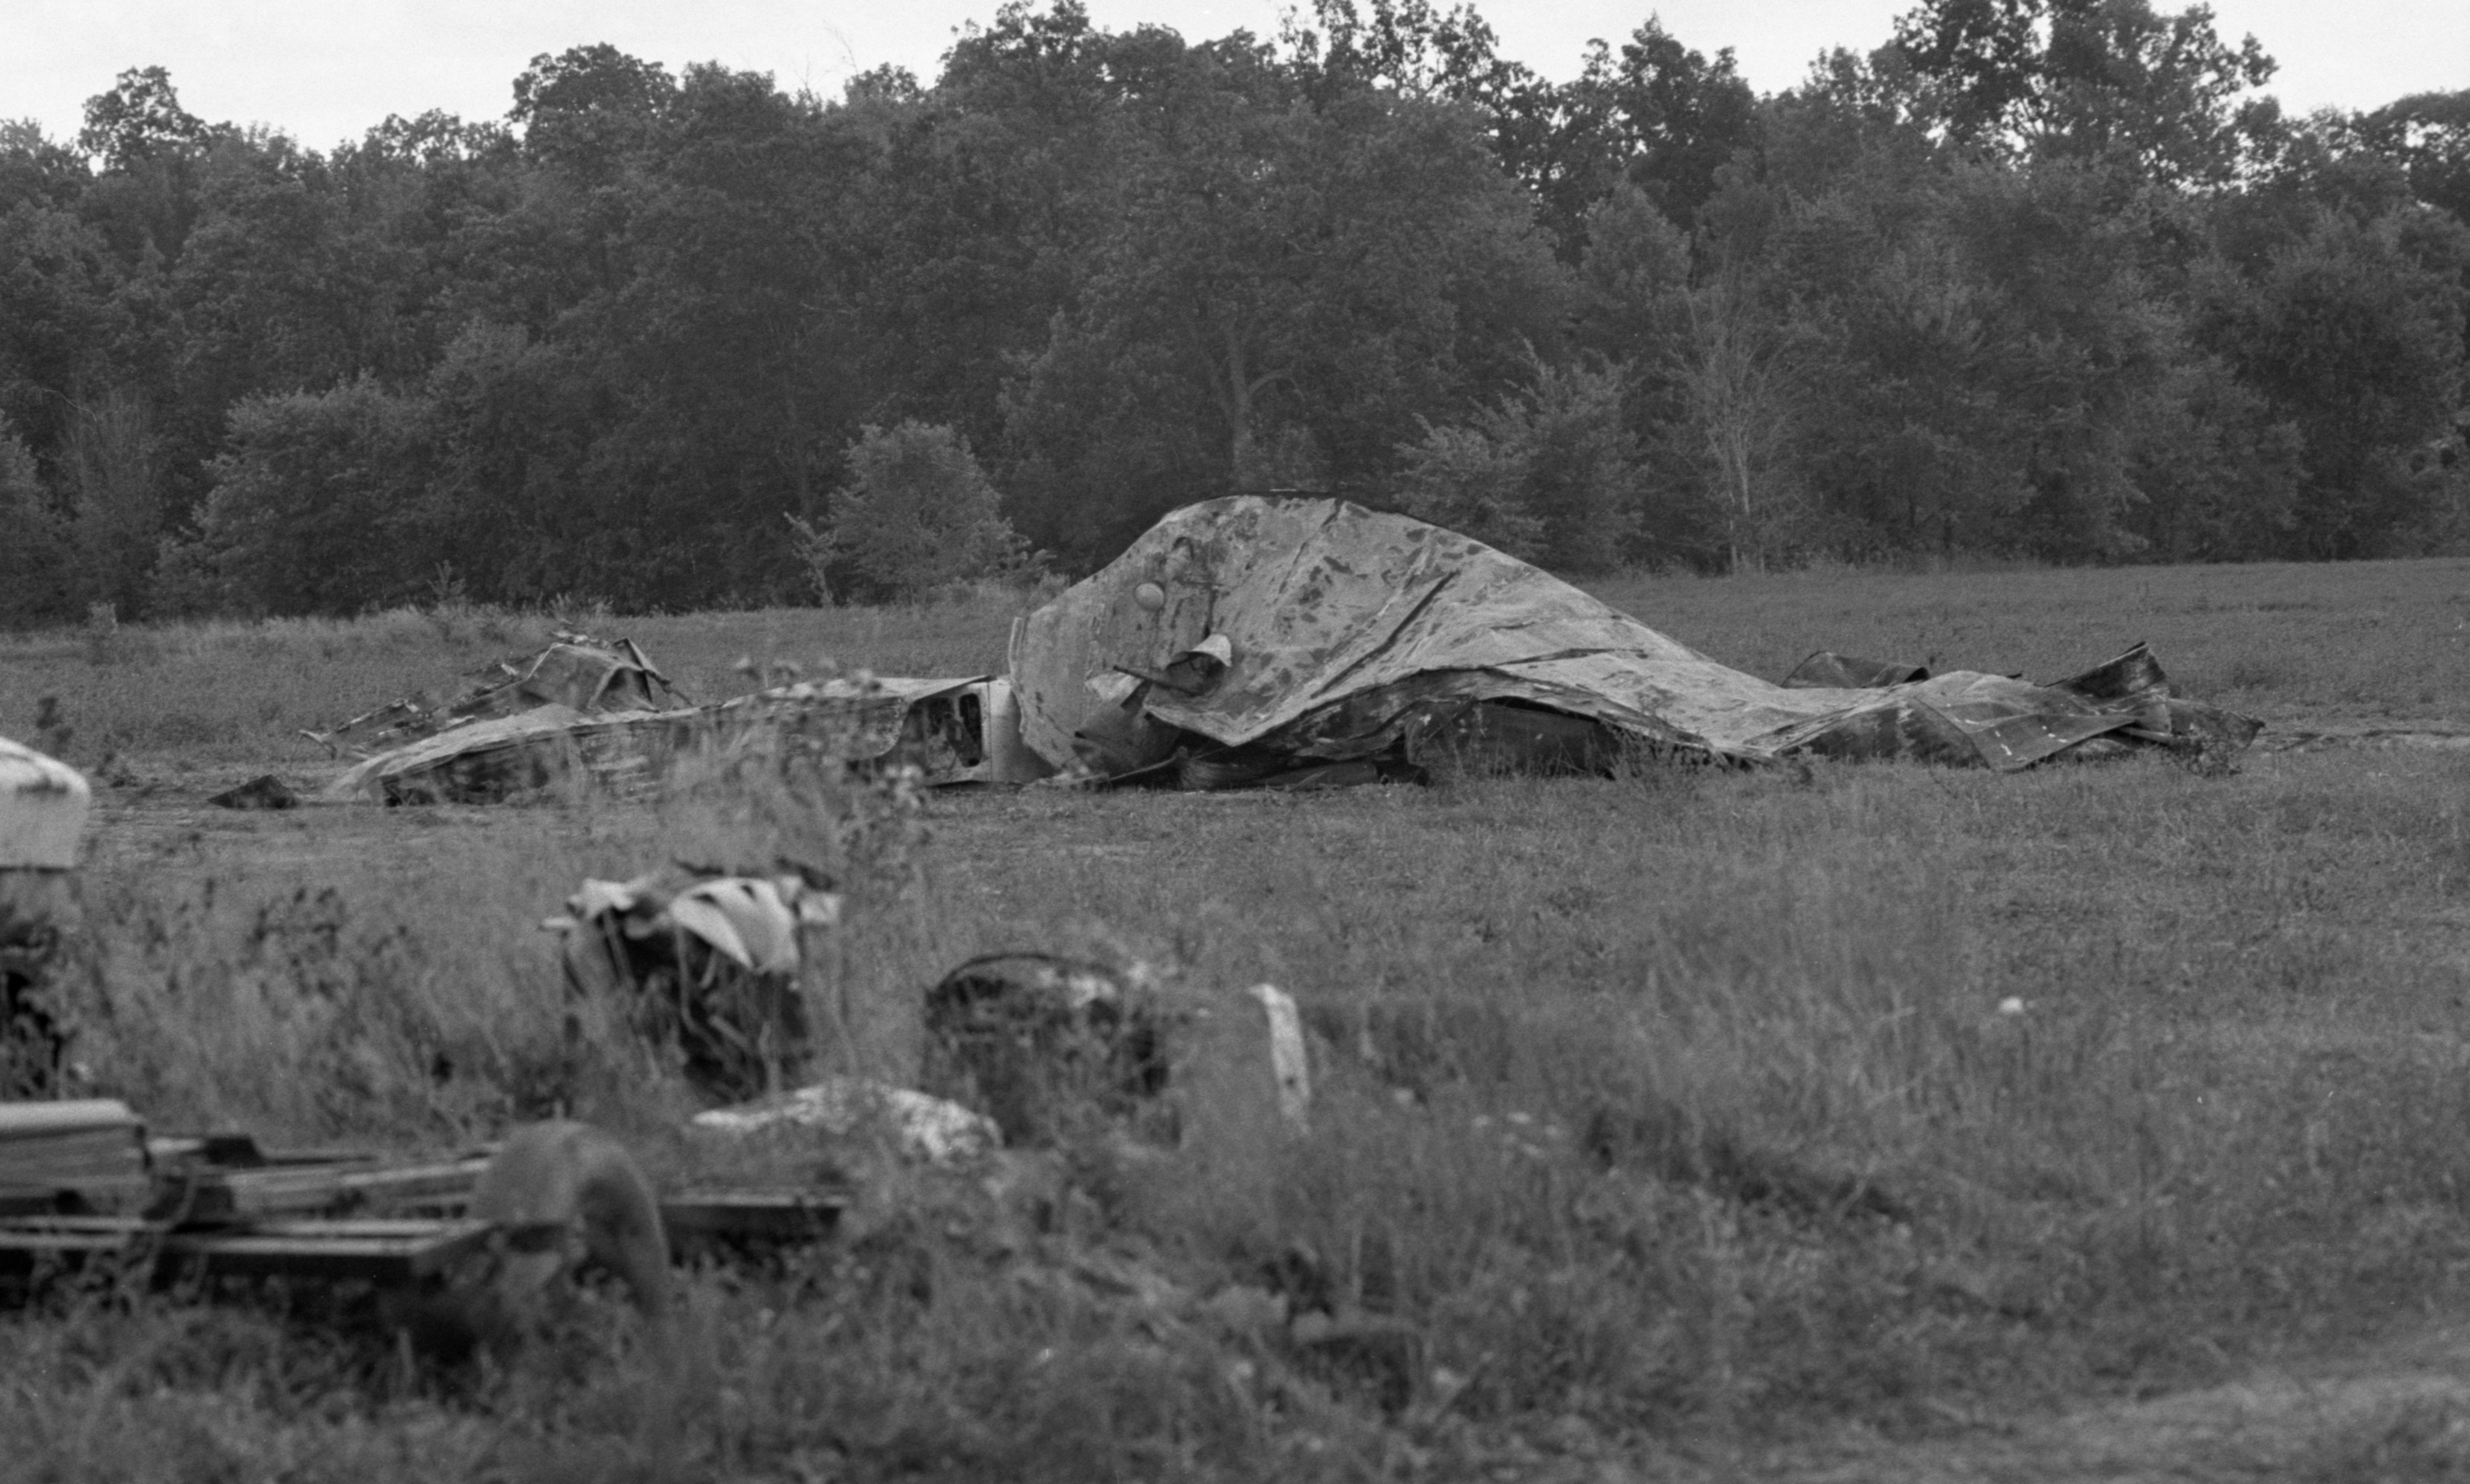 Remains Of The Trailer Once Occupied By Workers On The Kozminski Farm, October 1983 image